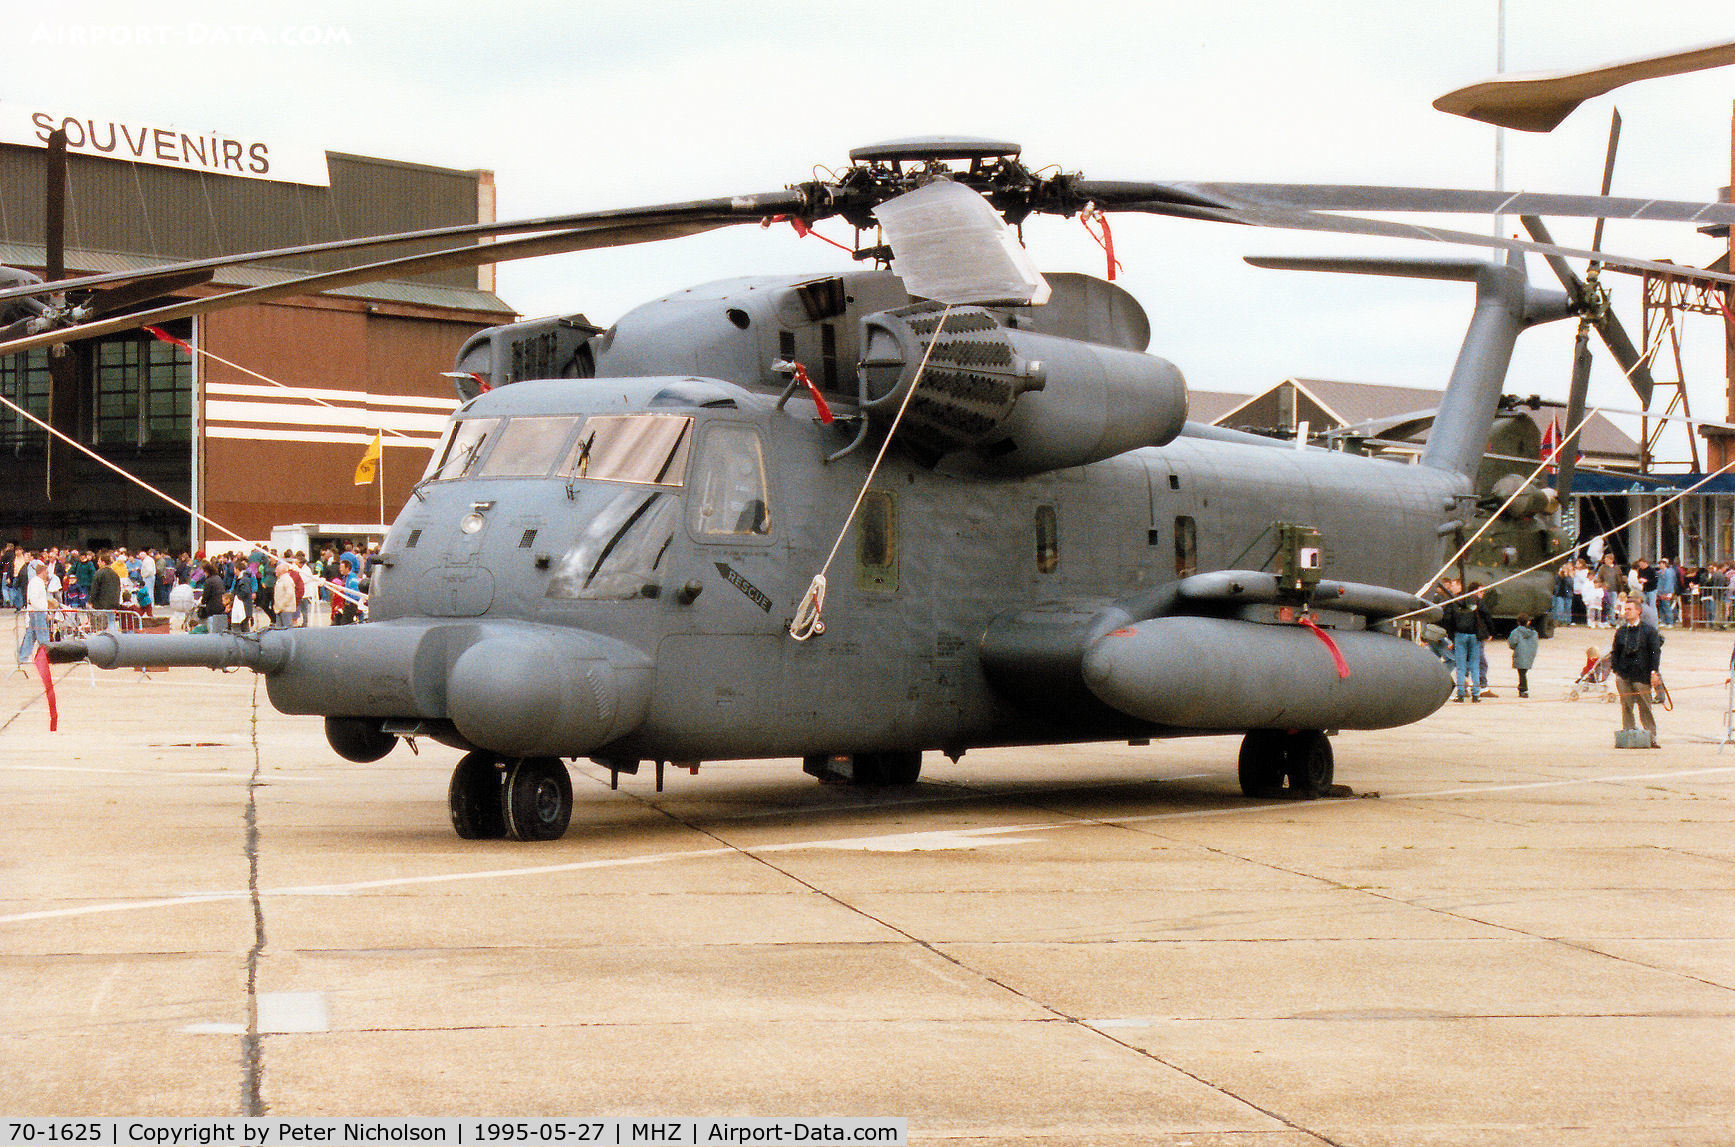 70-1625, 1970 Sikorsky MH-53J Pave Low III C/N 65-335, Pave Low III of 21st Special Operations Squadron on display at the 1995 RAF Mildenhall Air Fete.